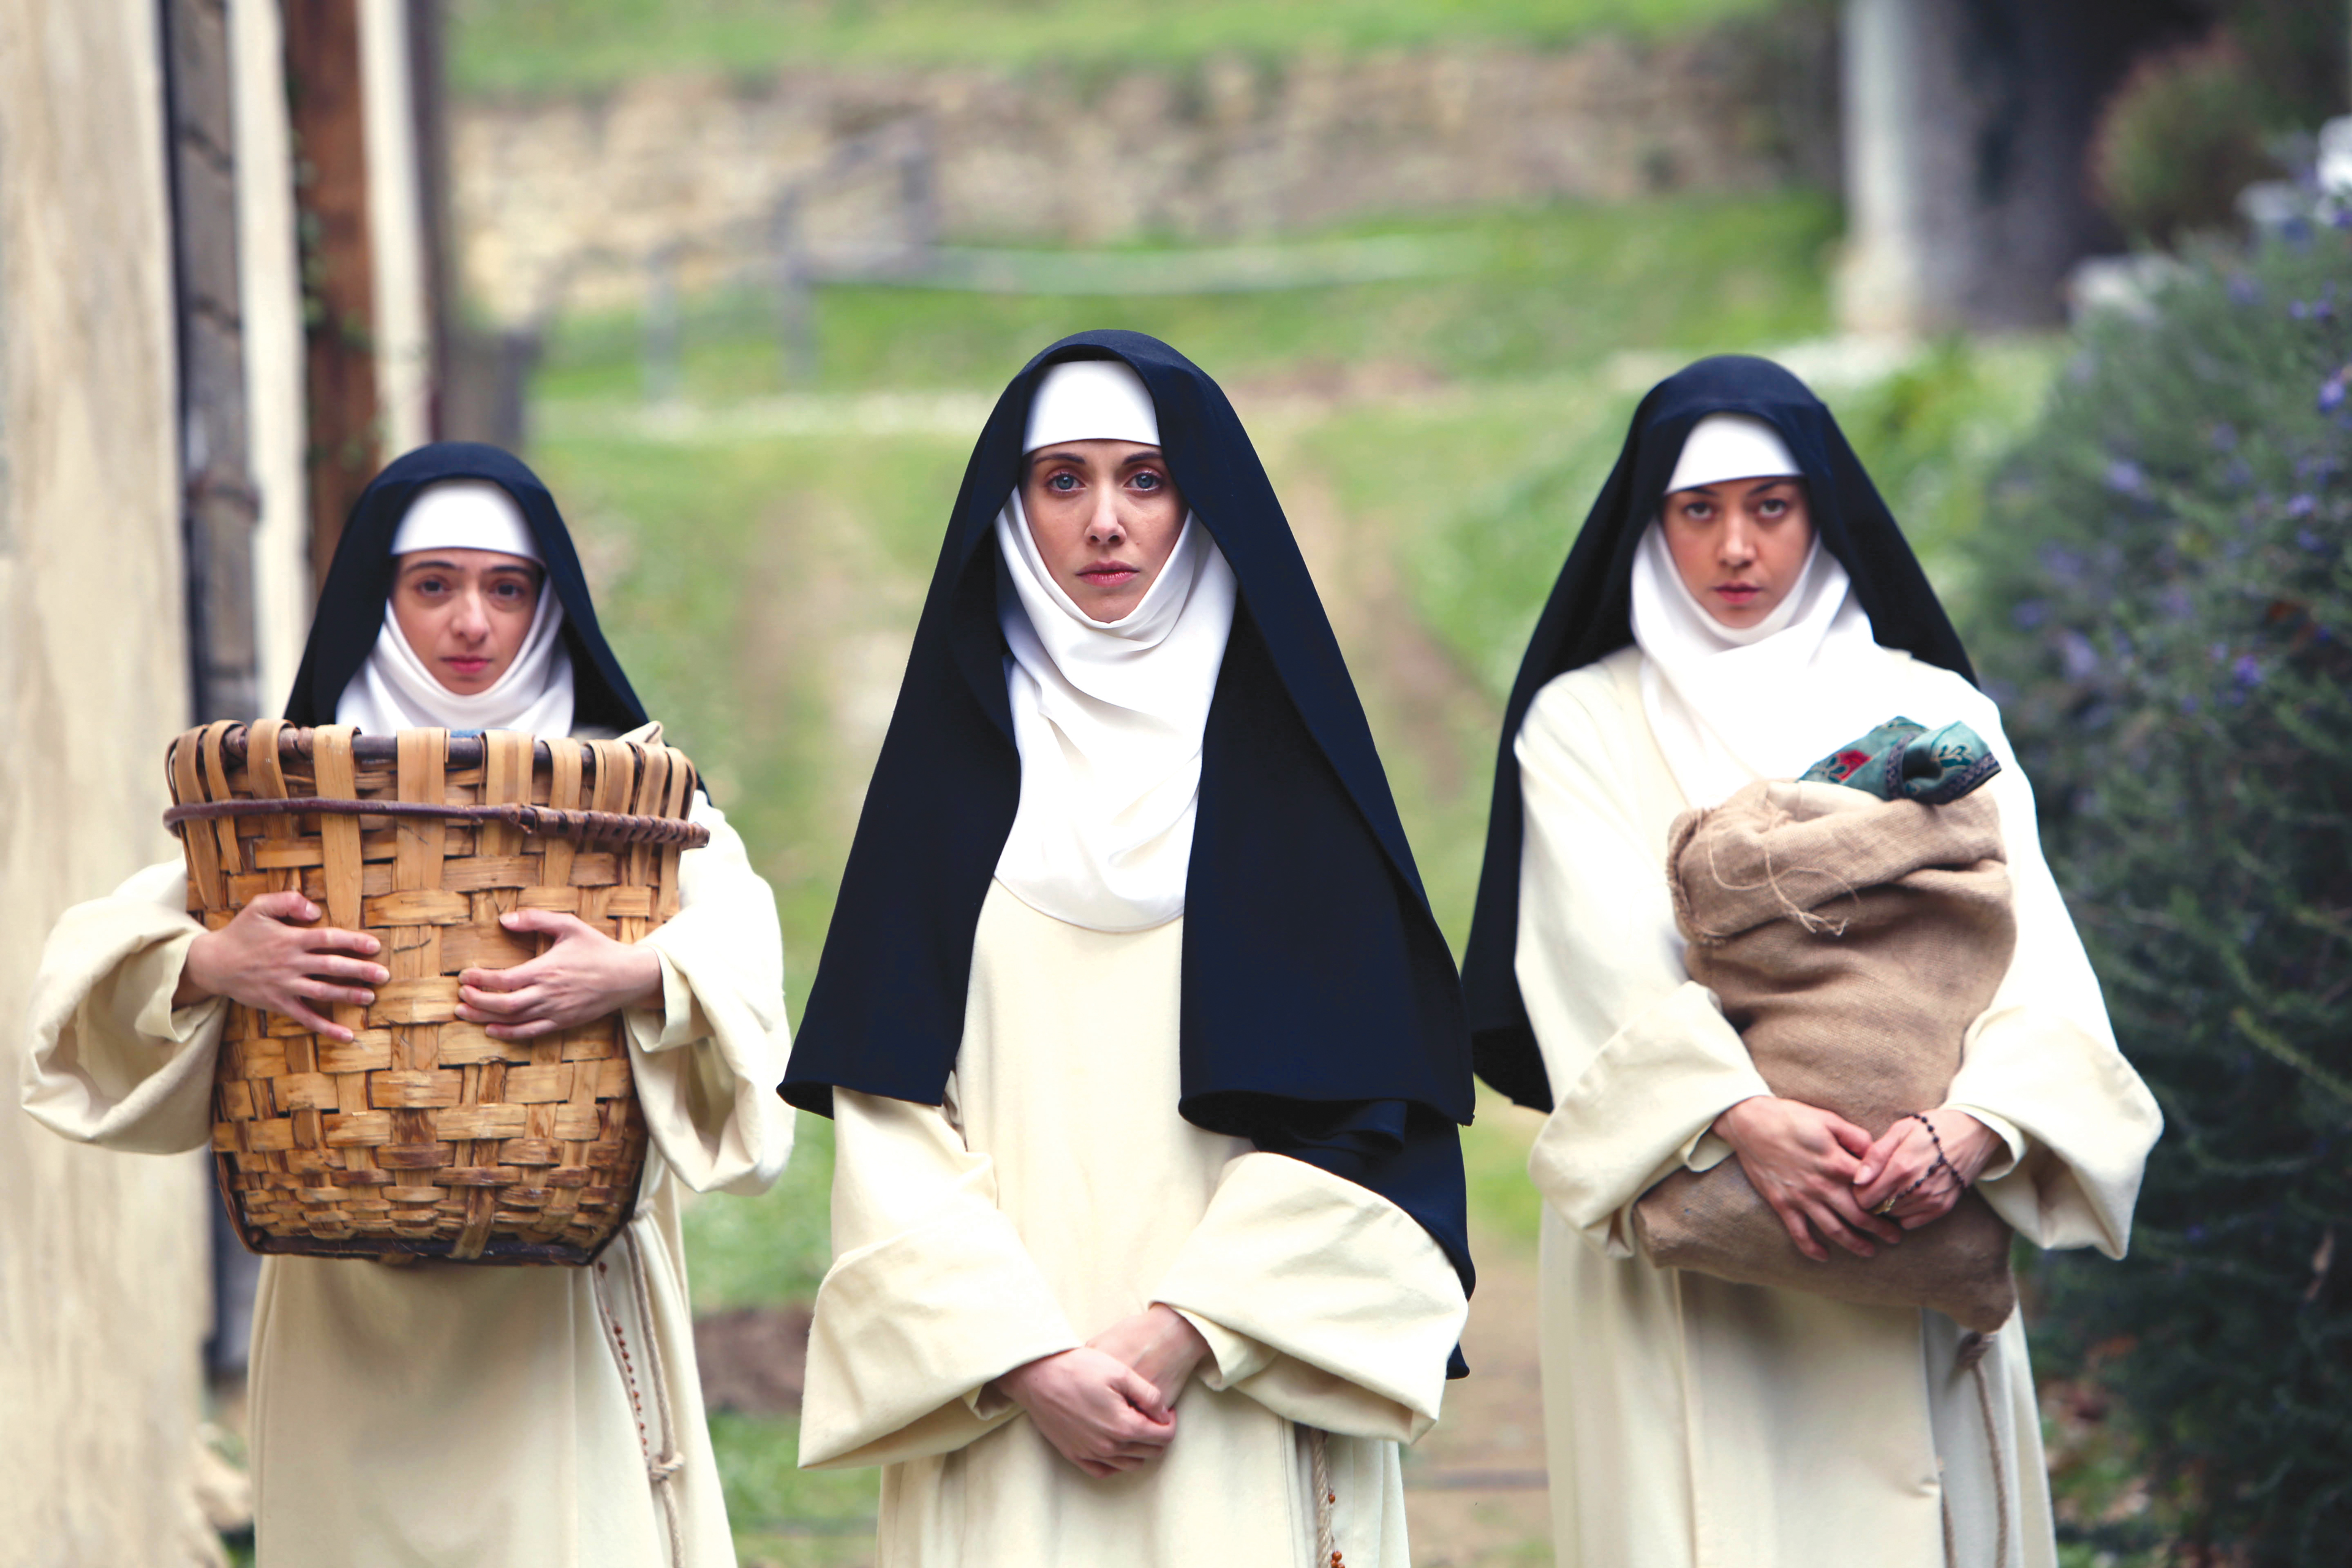 catholic nuns moving beyound the stereotypes essay